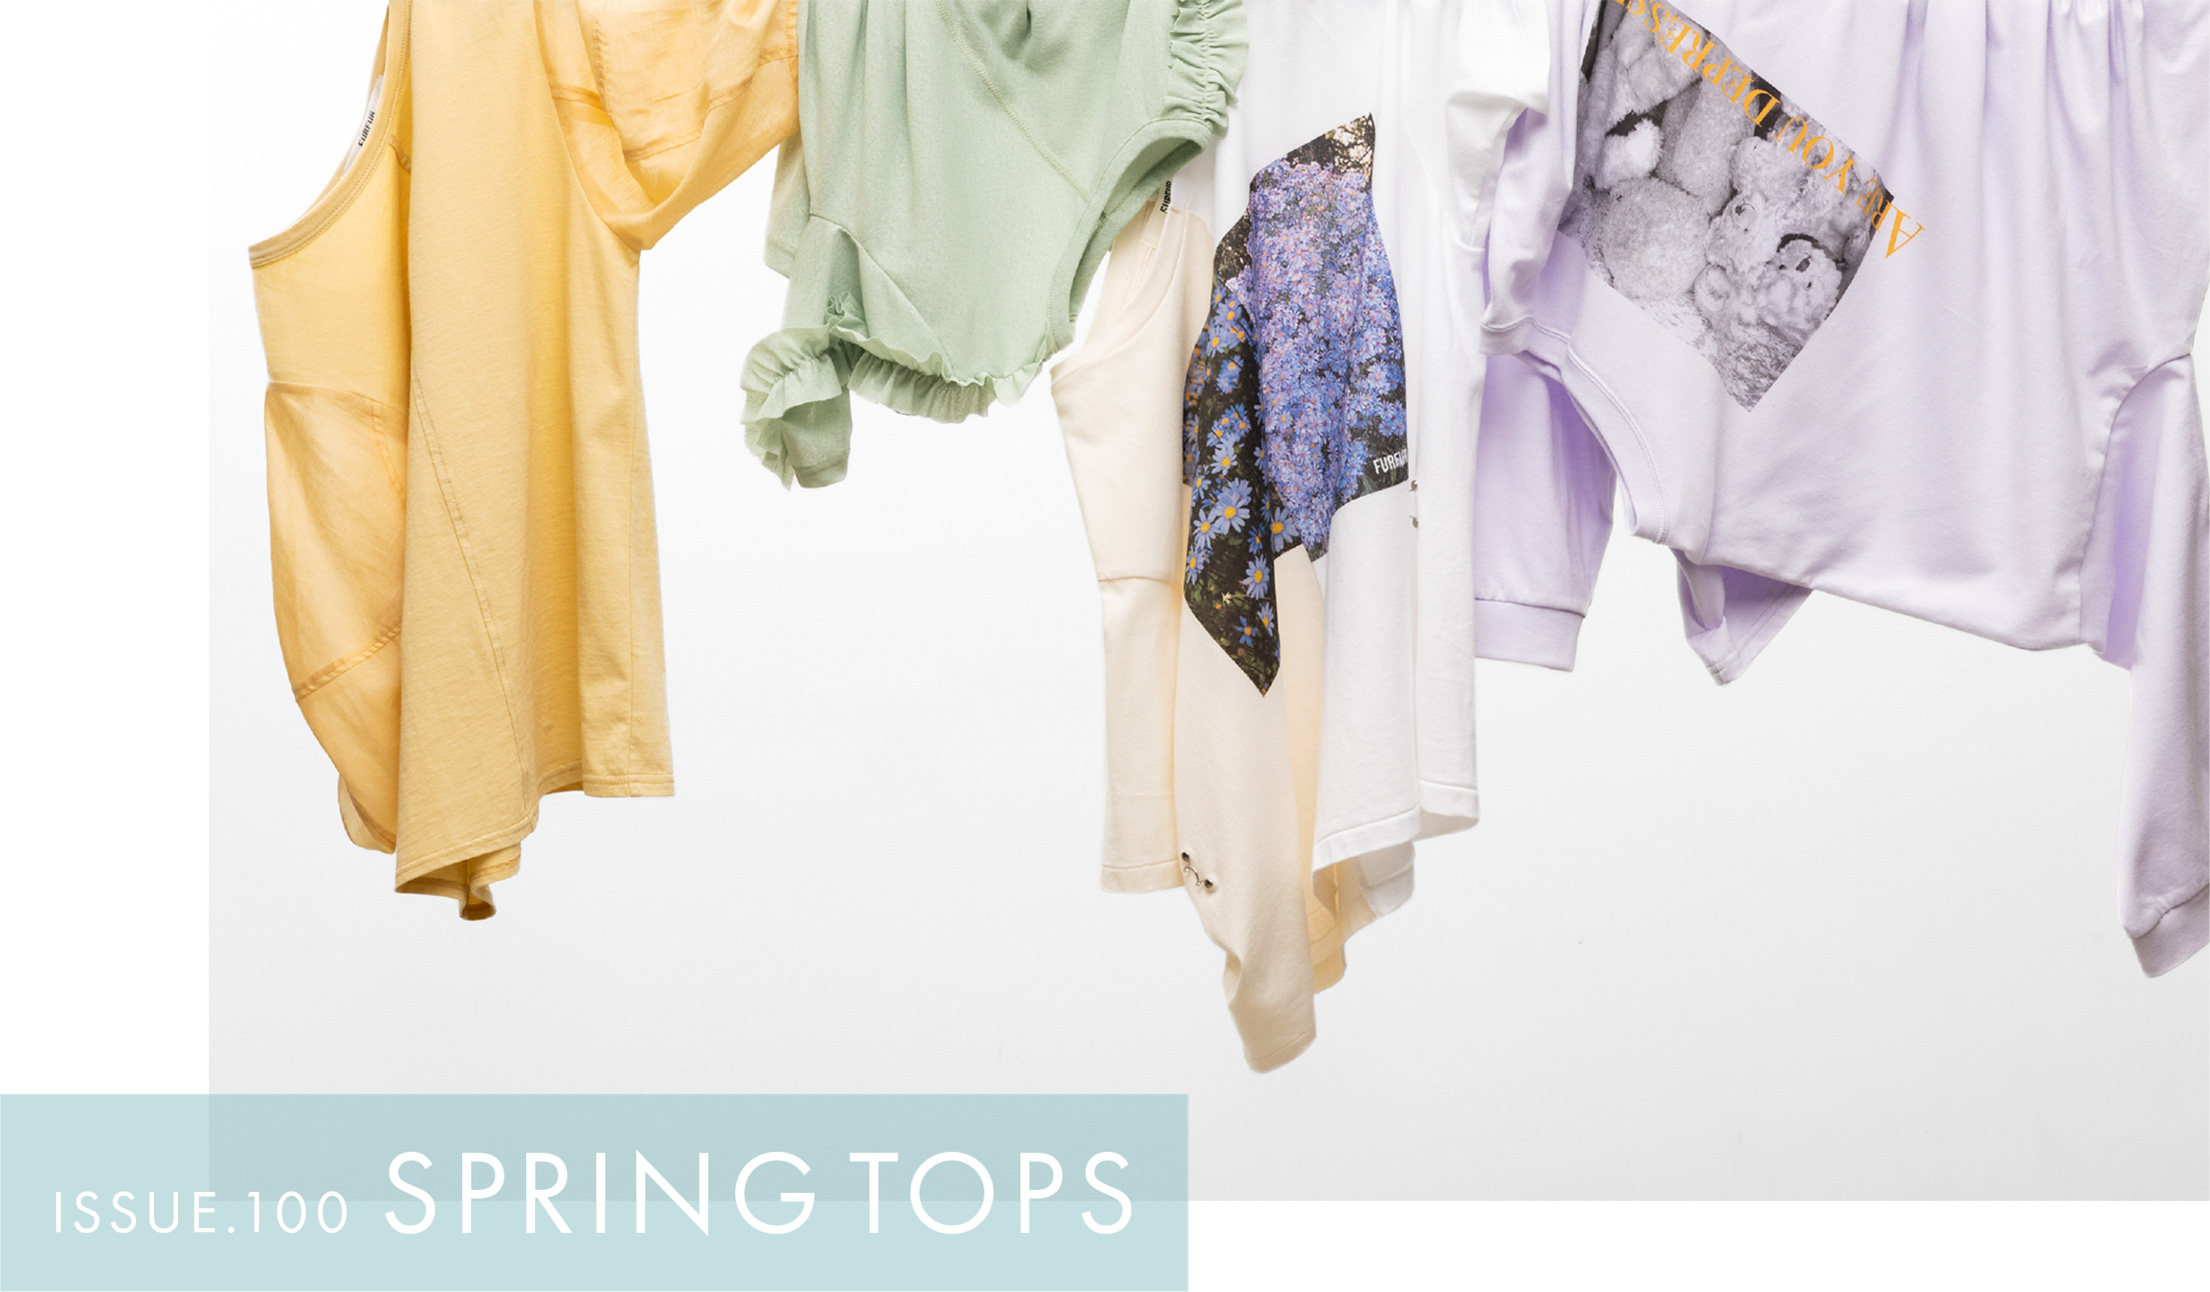 ISSUE 100 SPRING TOPS